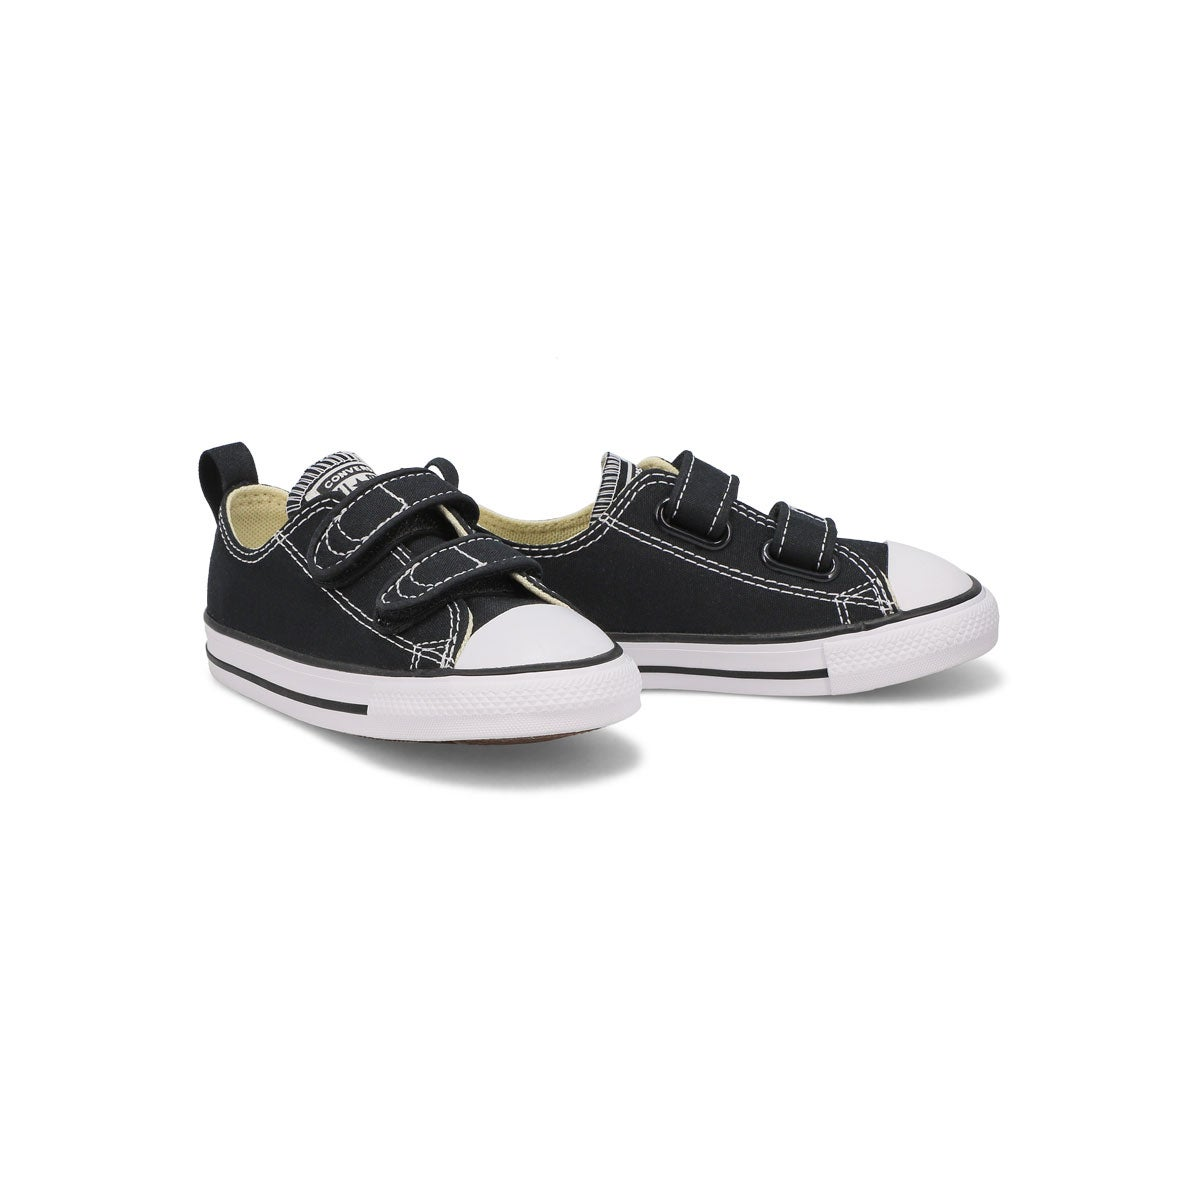 Infs Core V2 Ox black canvas sneaker